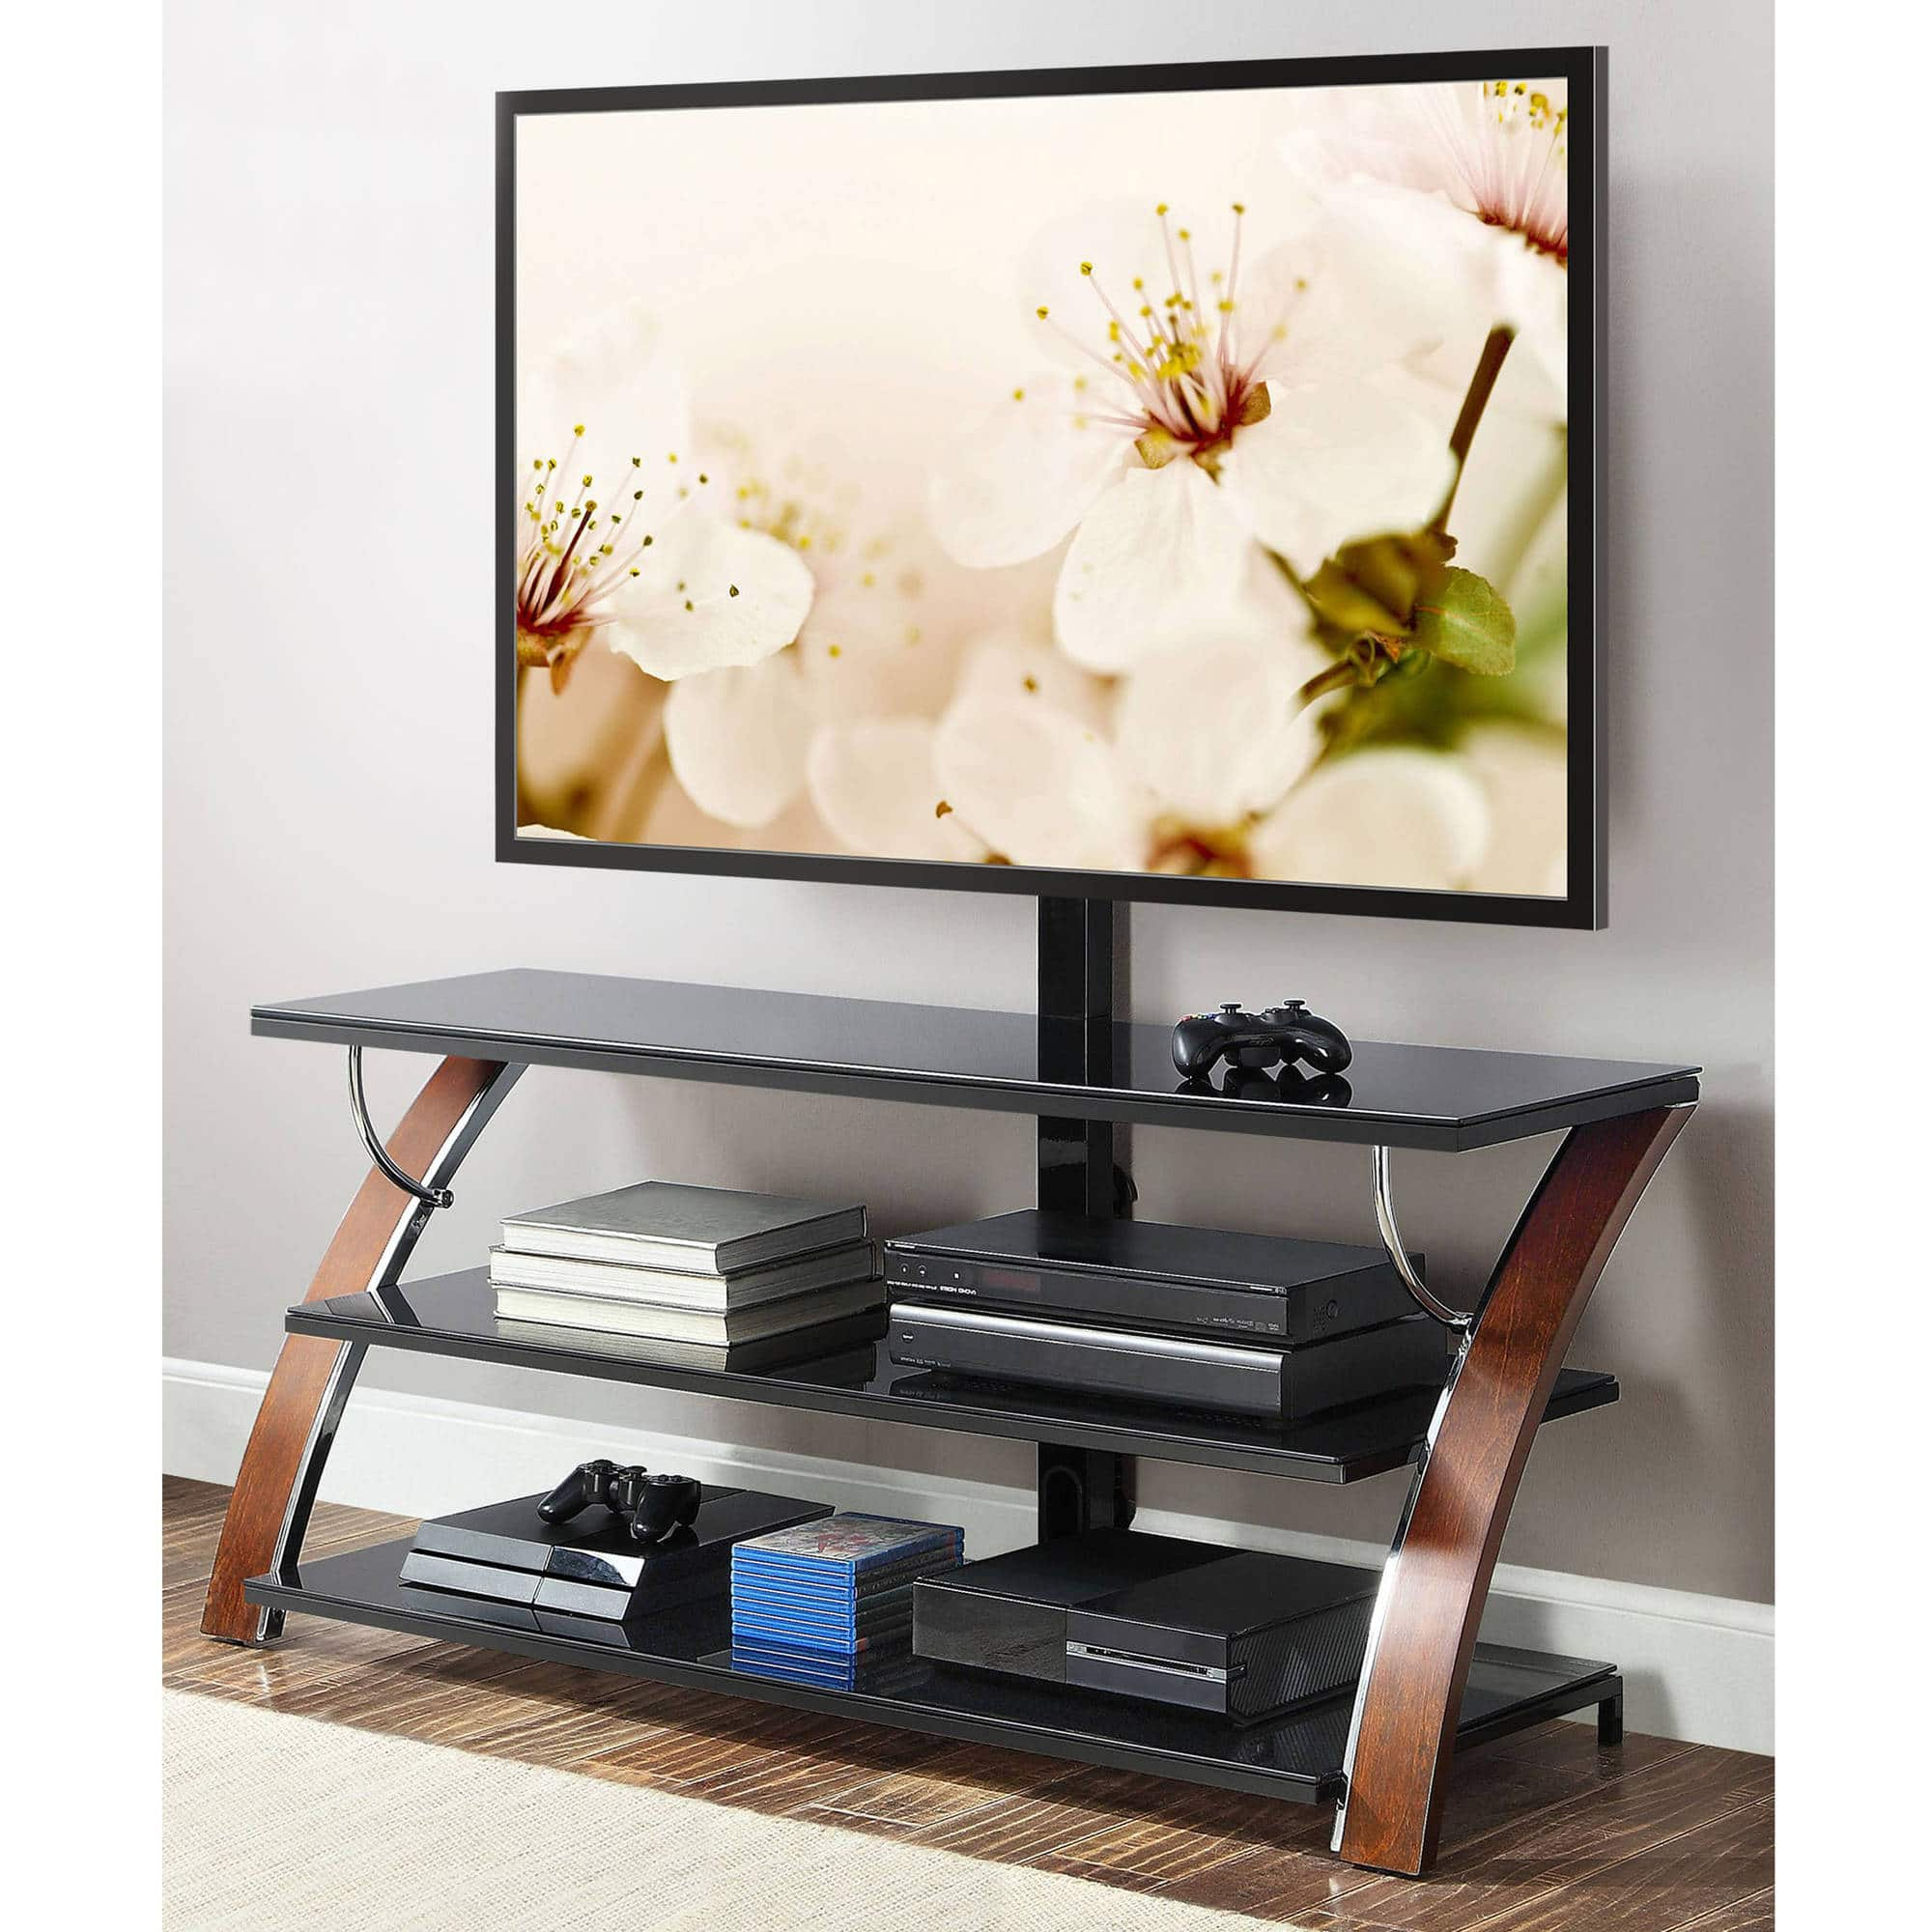 Whalen 3 In 1 Flat Panel Tv Stand For Tvs Up To 65 Brown Cherry Expired